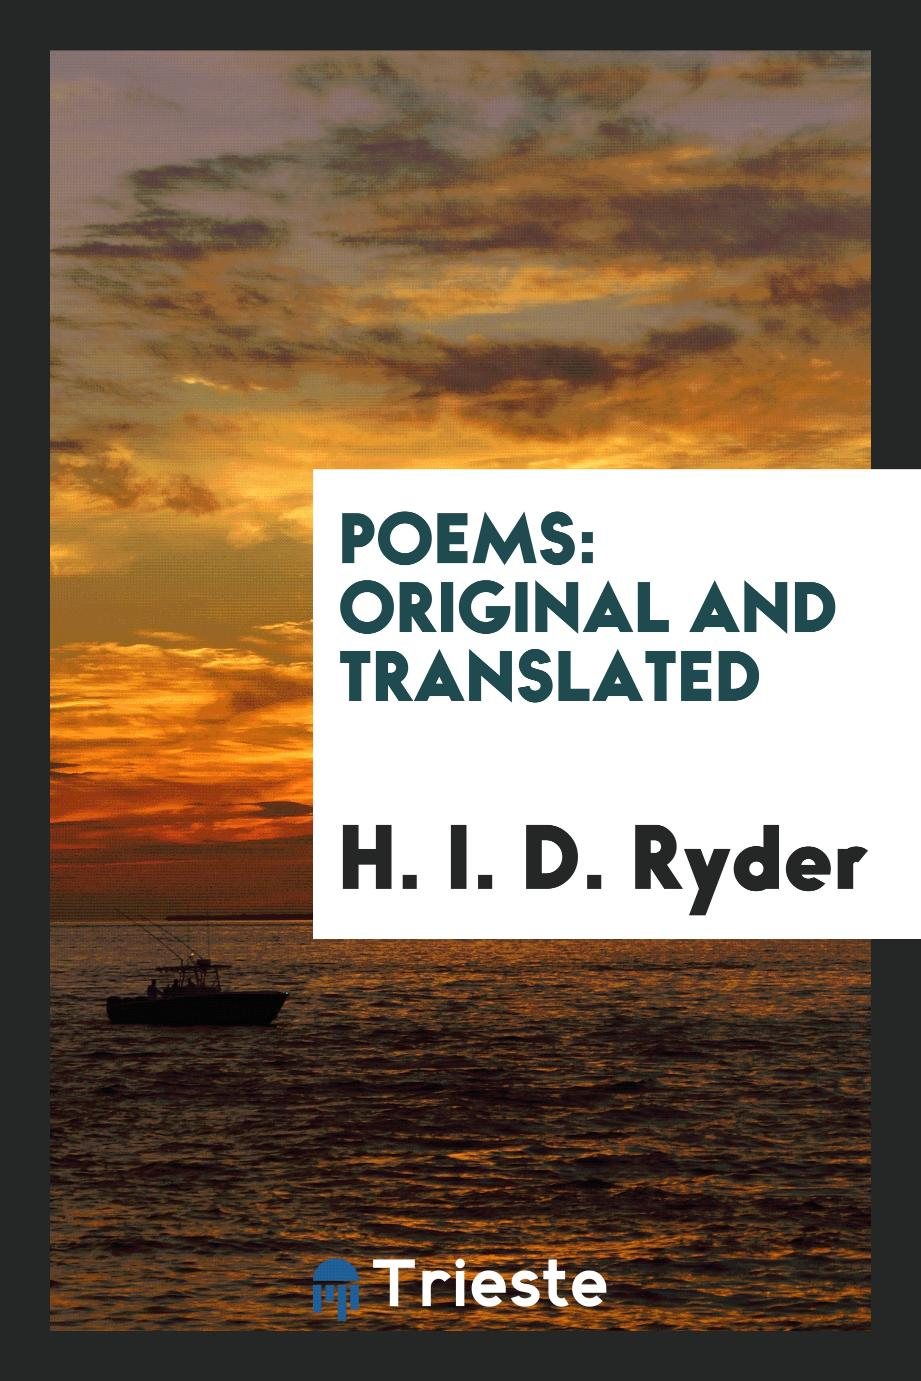 Poems: original and translated